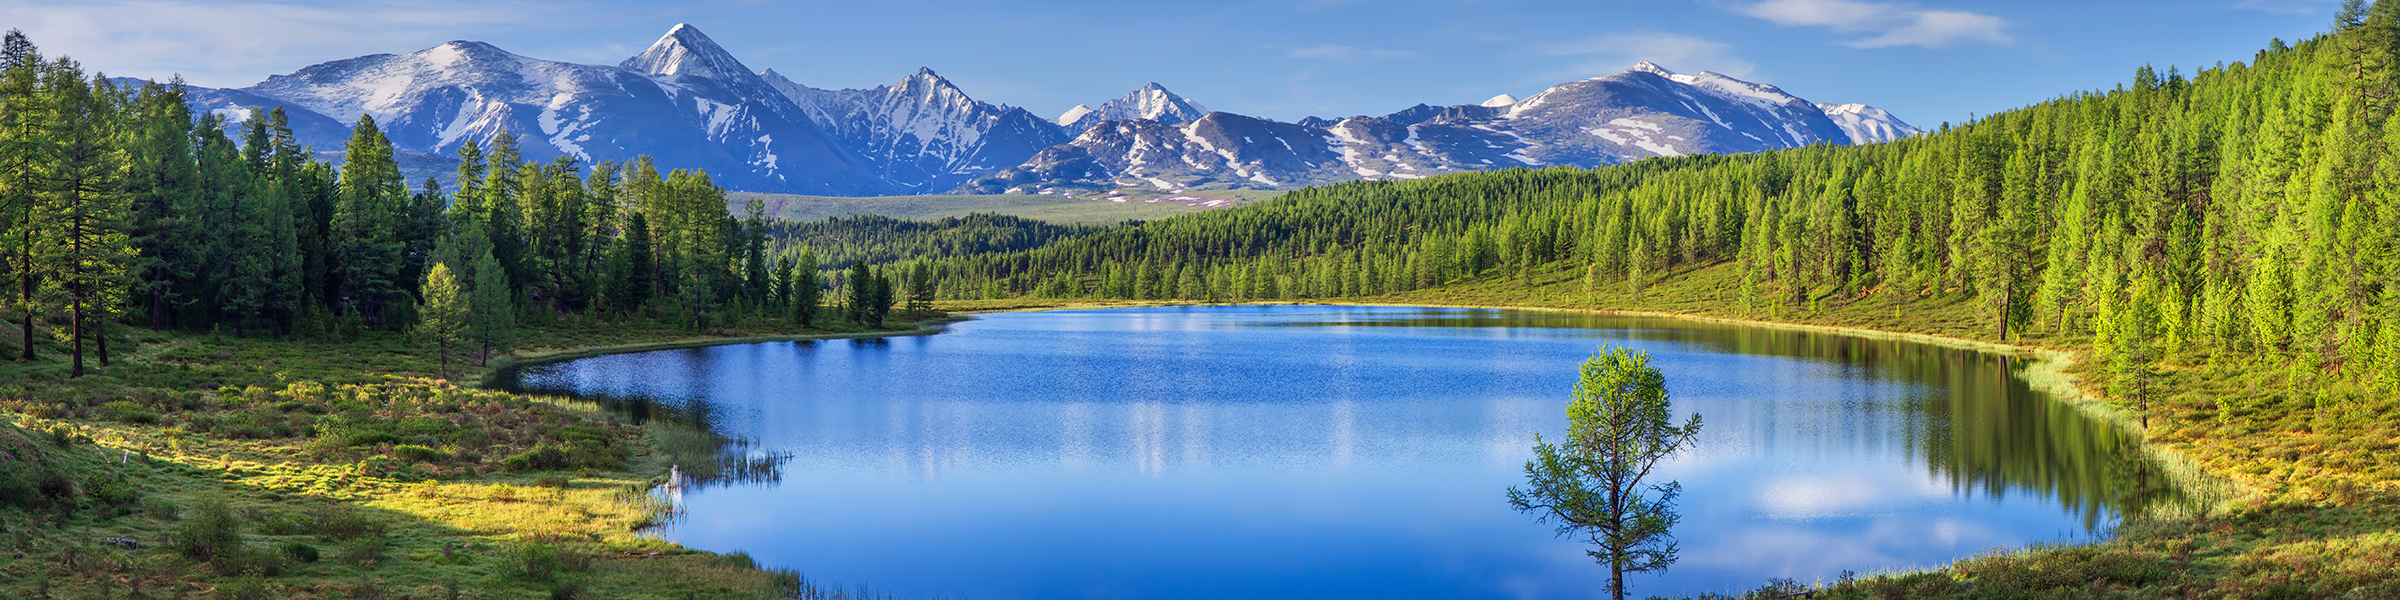 Russia Altai Mountains